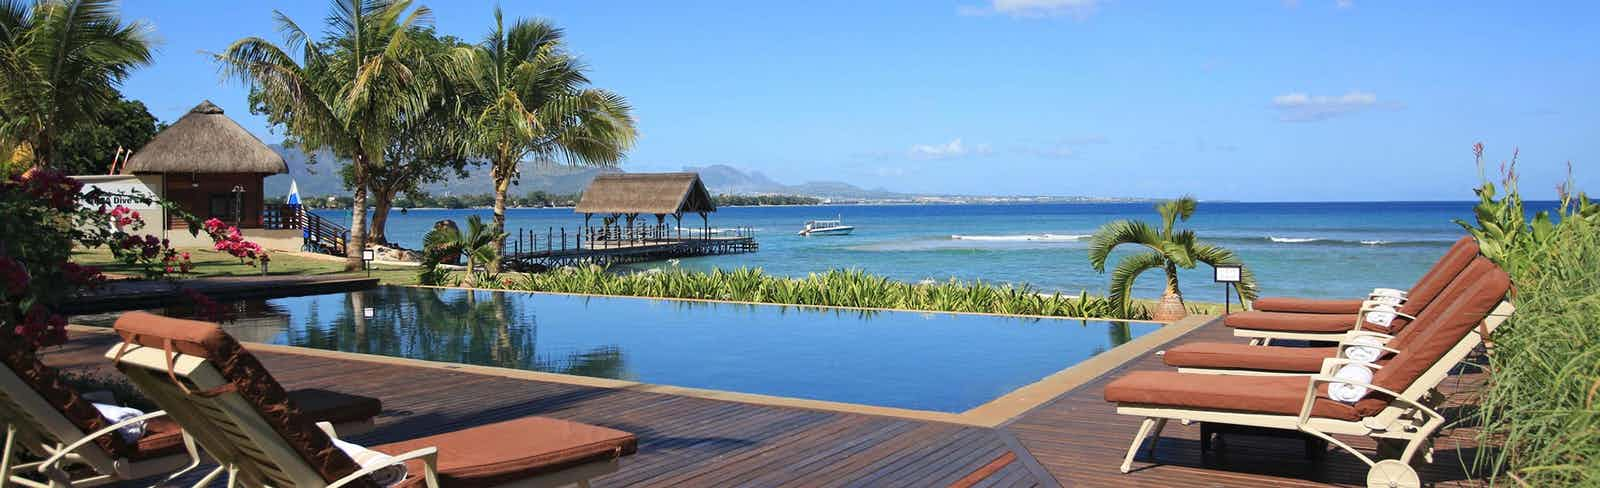 Intercontinental Mauritius Resort